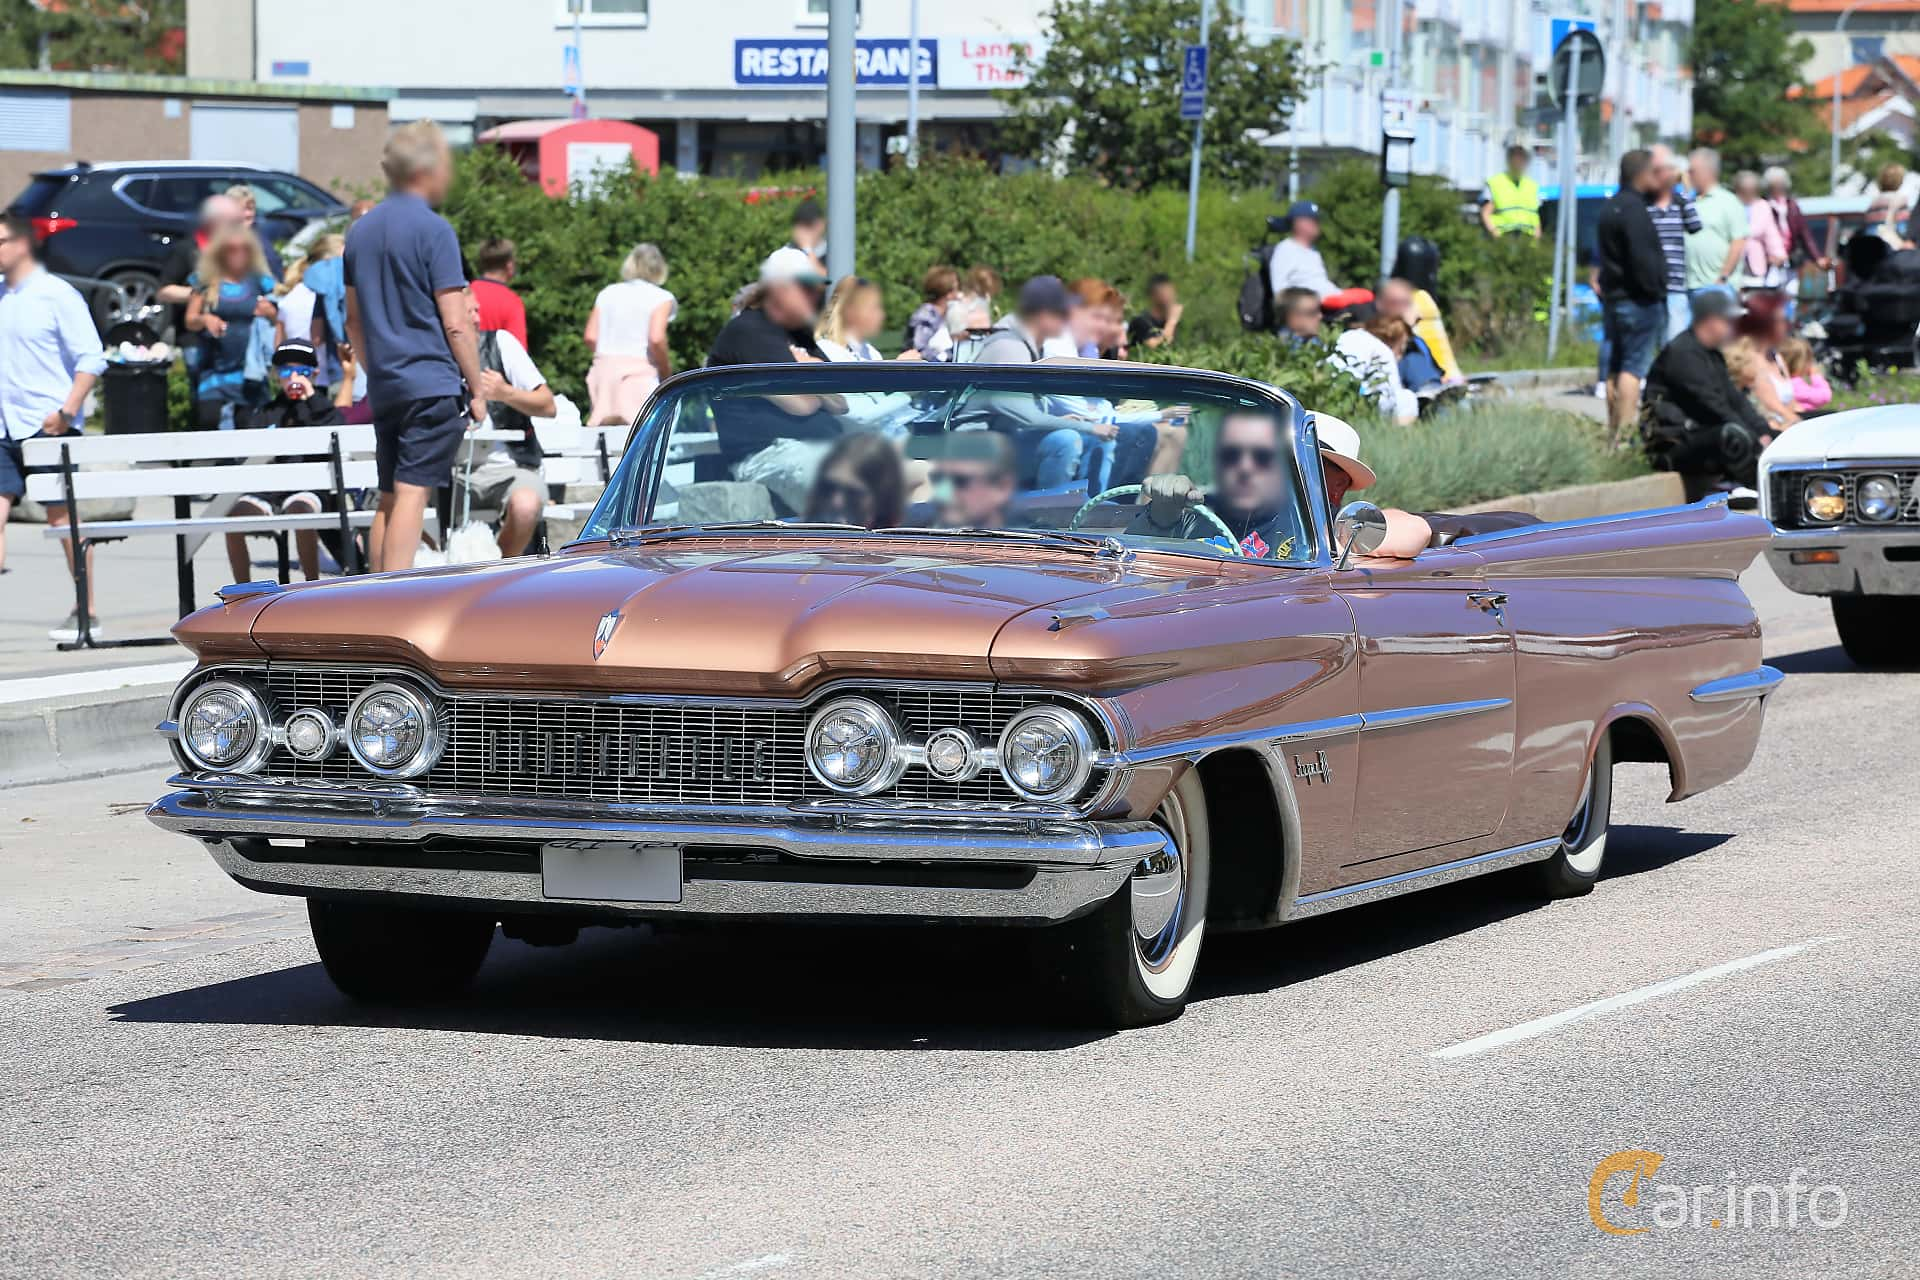 Oldsmobile Super 88 Convertible Coupé 6.5 V8 Hydra-Matic, 320hk, 1959 at Cruising Lysekil 2019